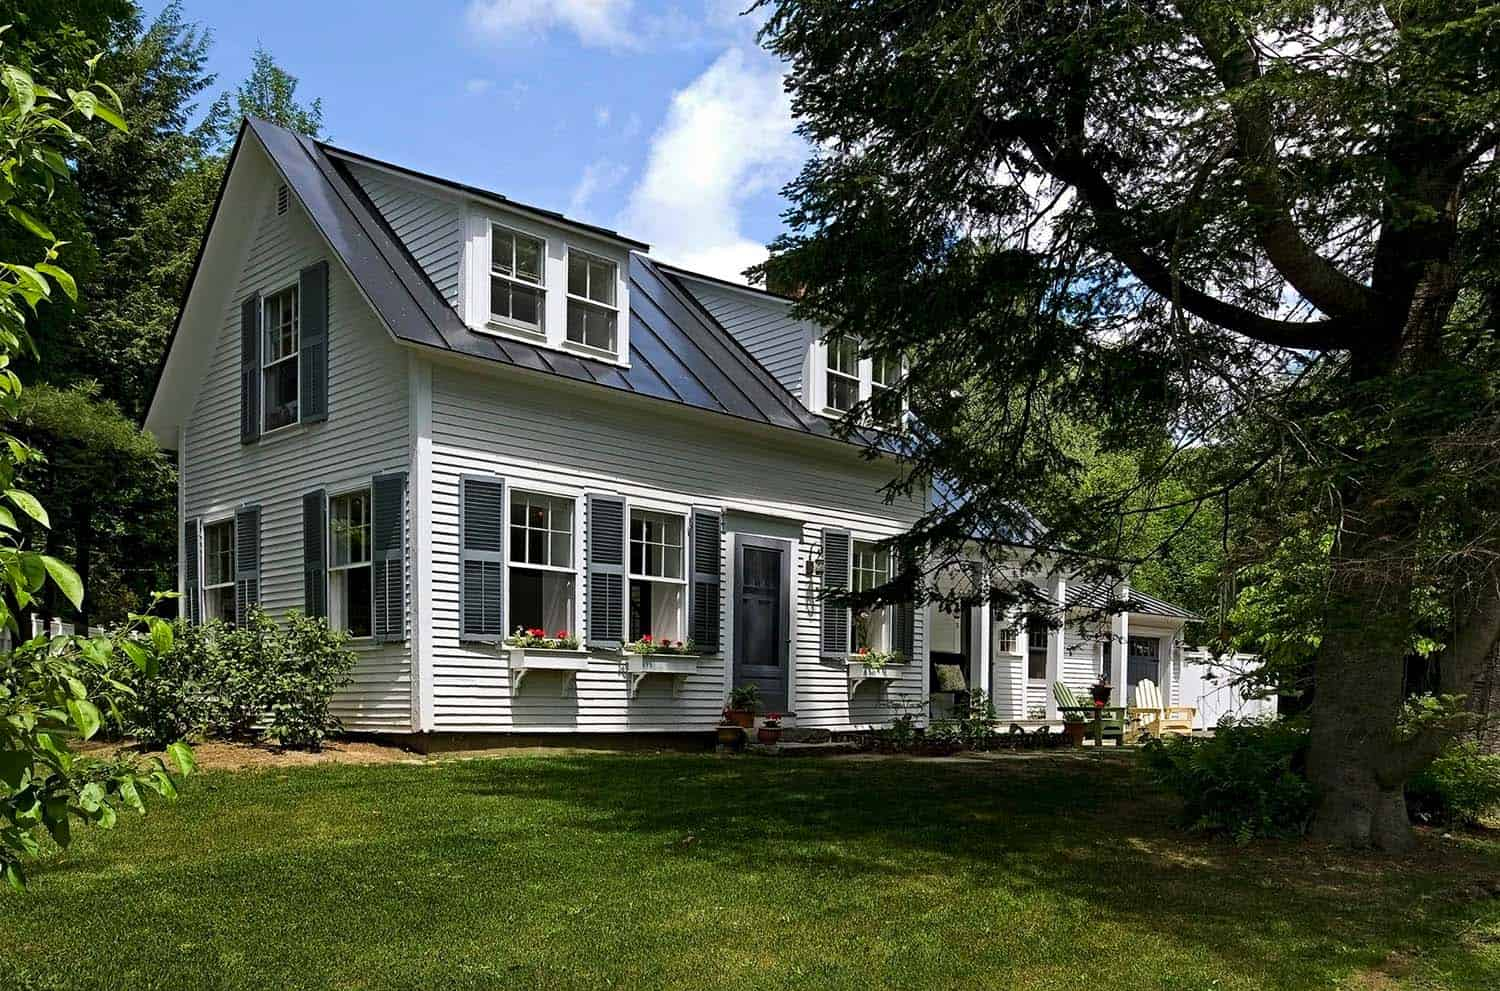 Antique cape style house gets charming makeover in new england for Vermont home designs